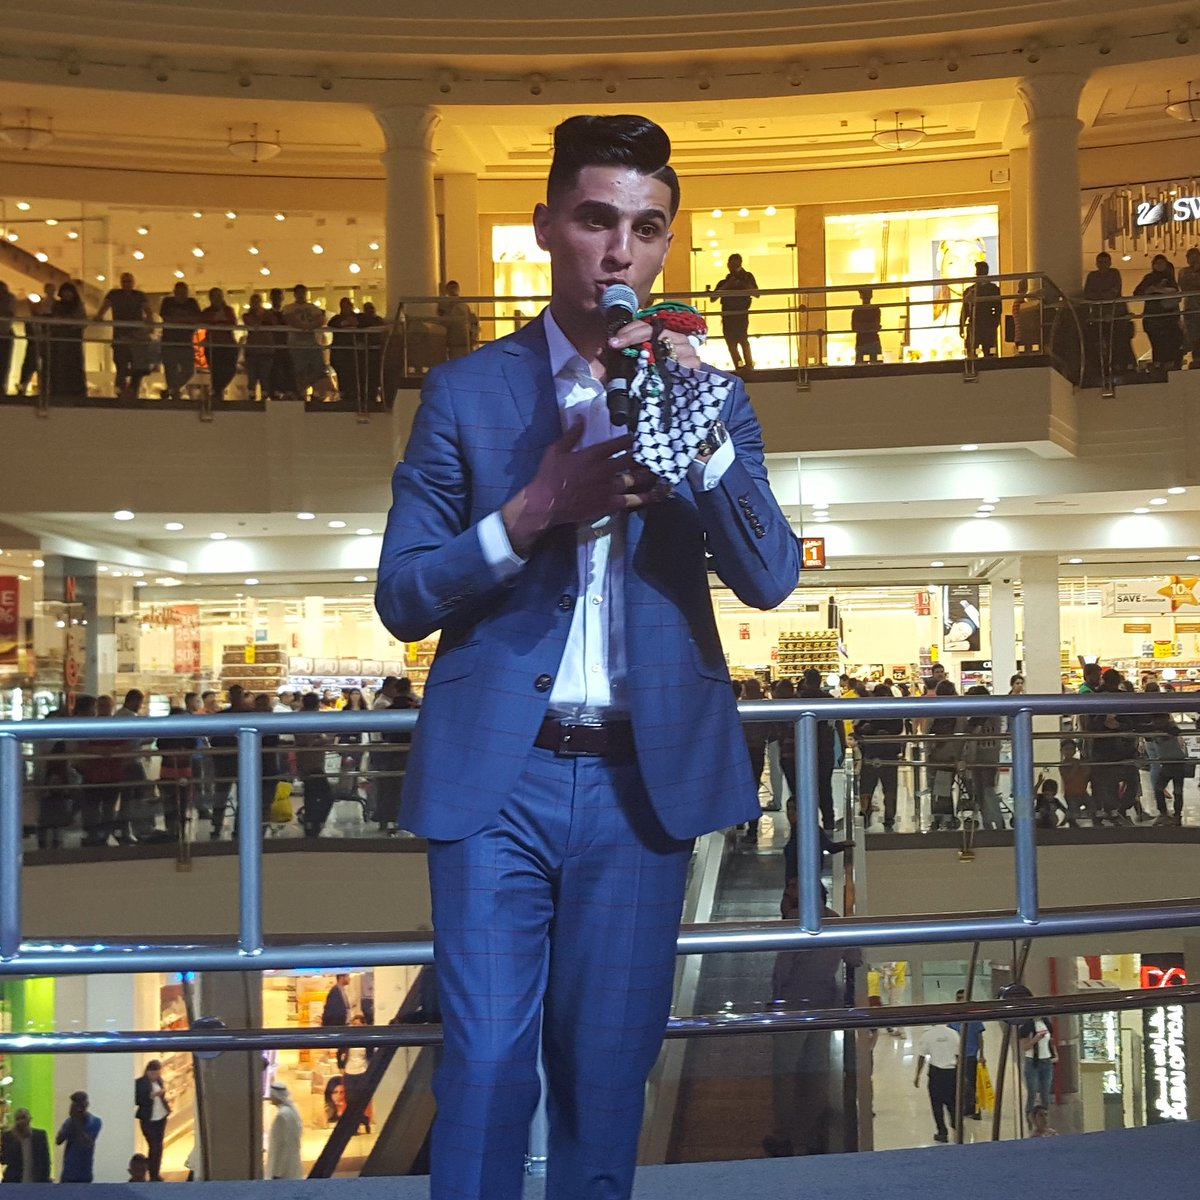 What a fantastic evening tonight with @mohammedassaf89! Share your snaps with us! #CCDSS16 https://t.co/AahHhNHFpm